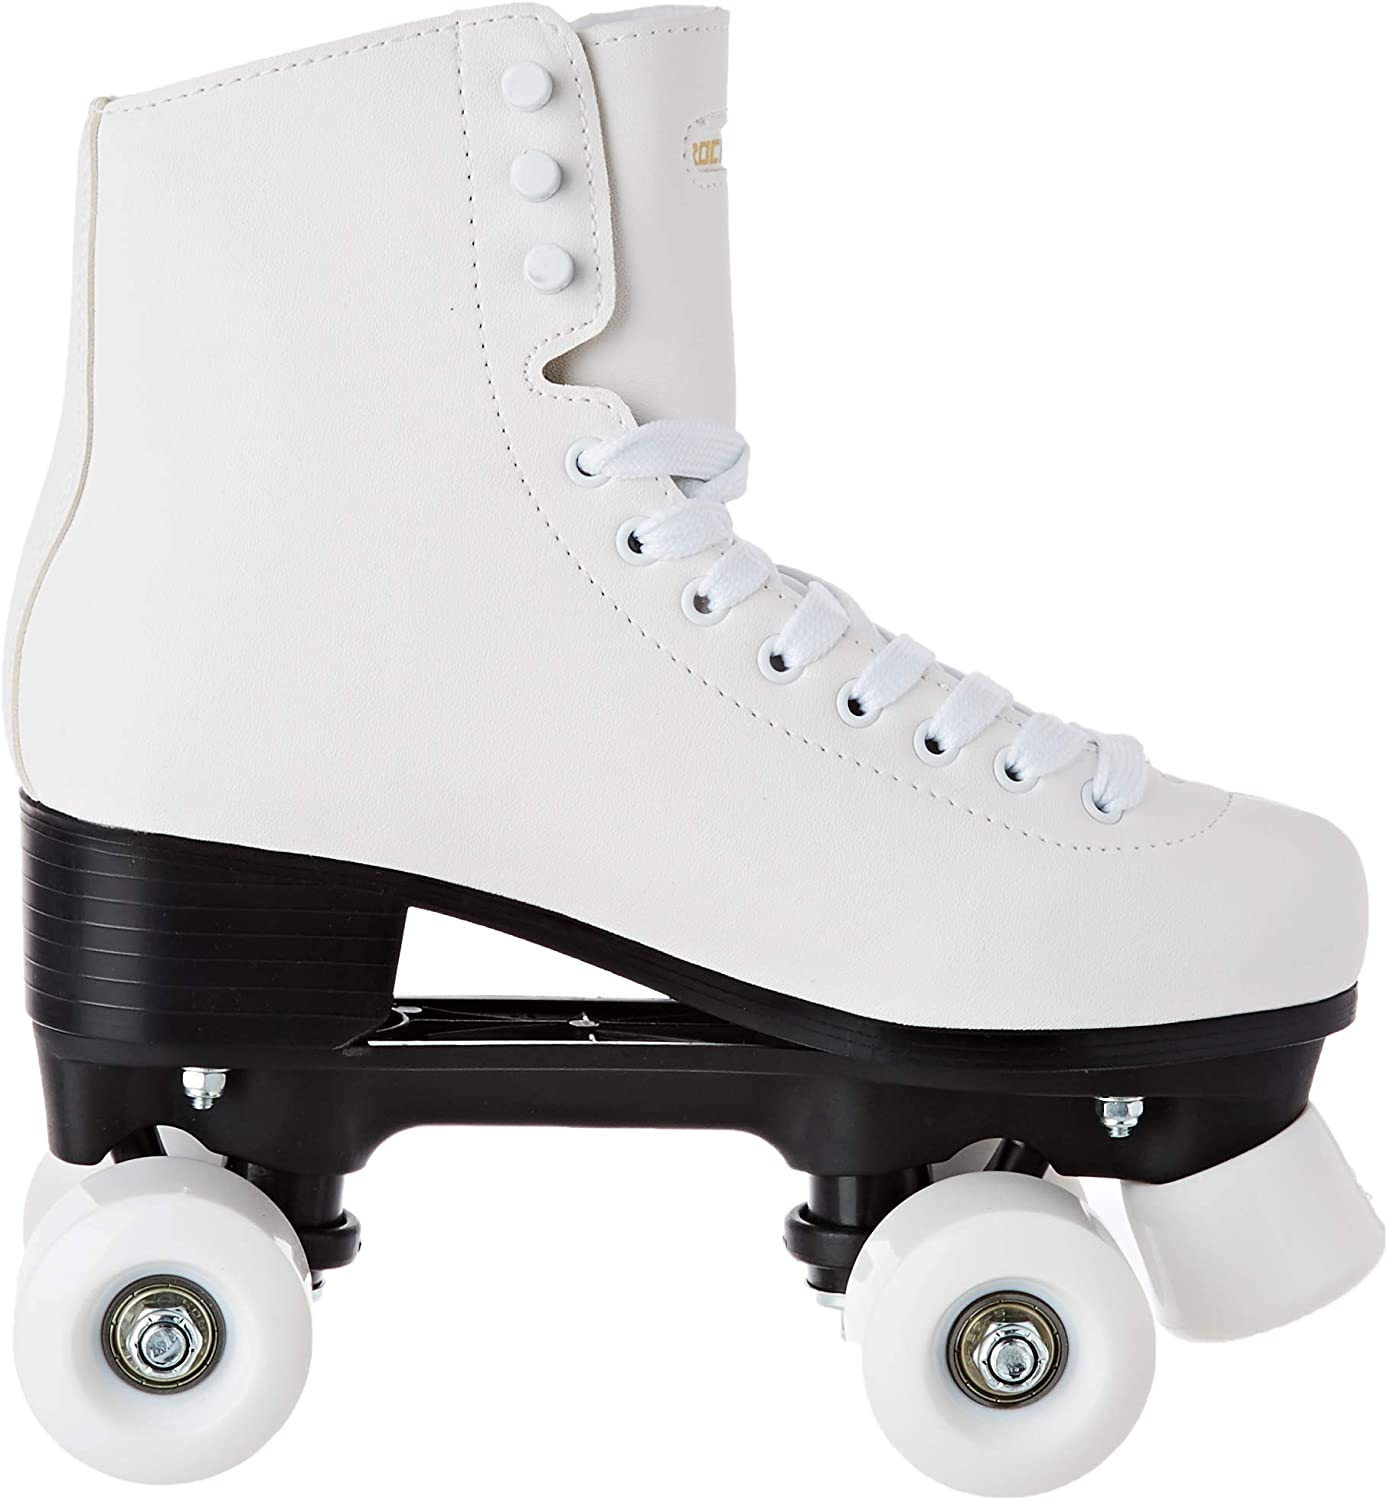 Unisex Roces RC1/Classic Roller Roller Skates Roller Artistic RC1 Classicroller